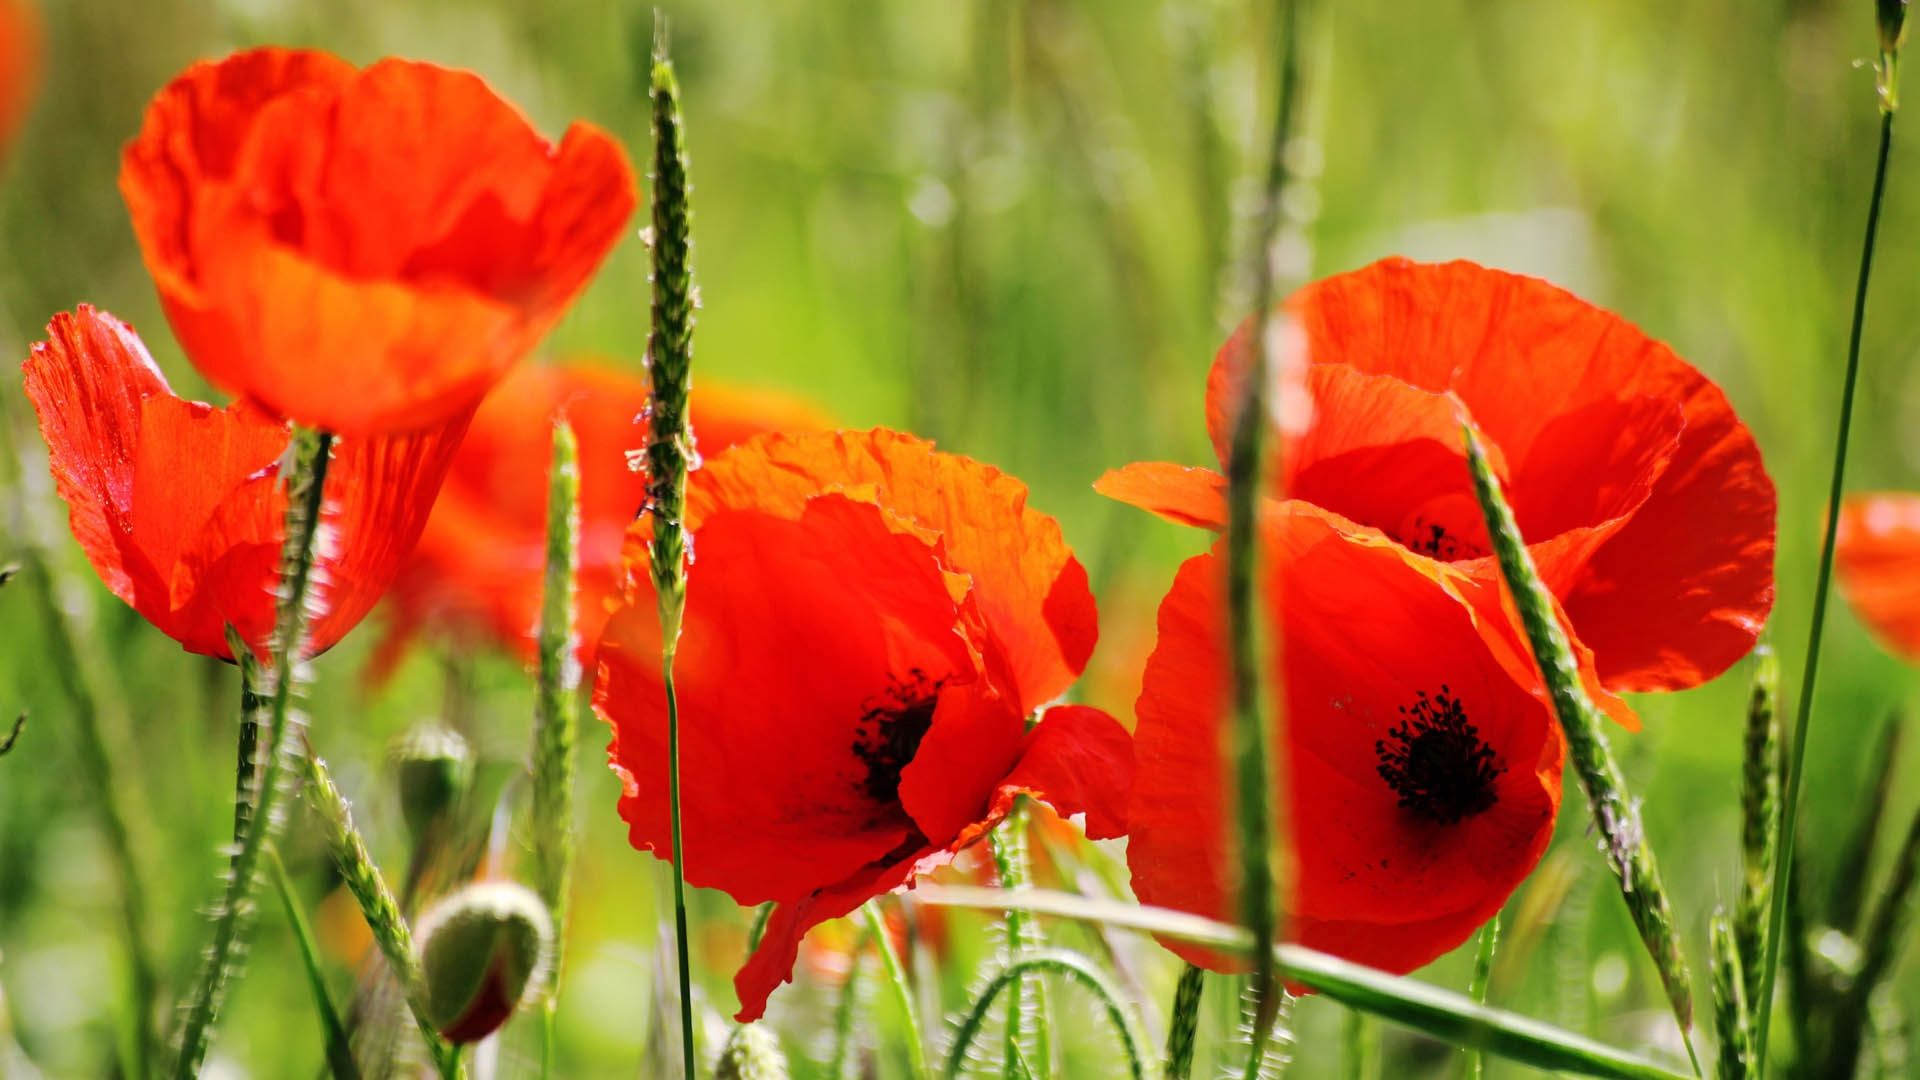 Poppy download free wallpaper image search